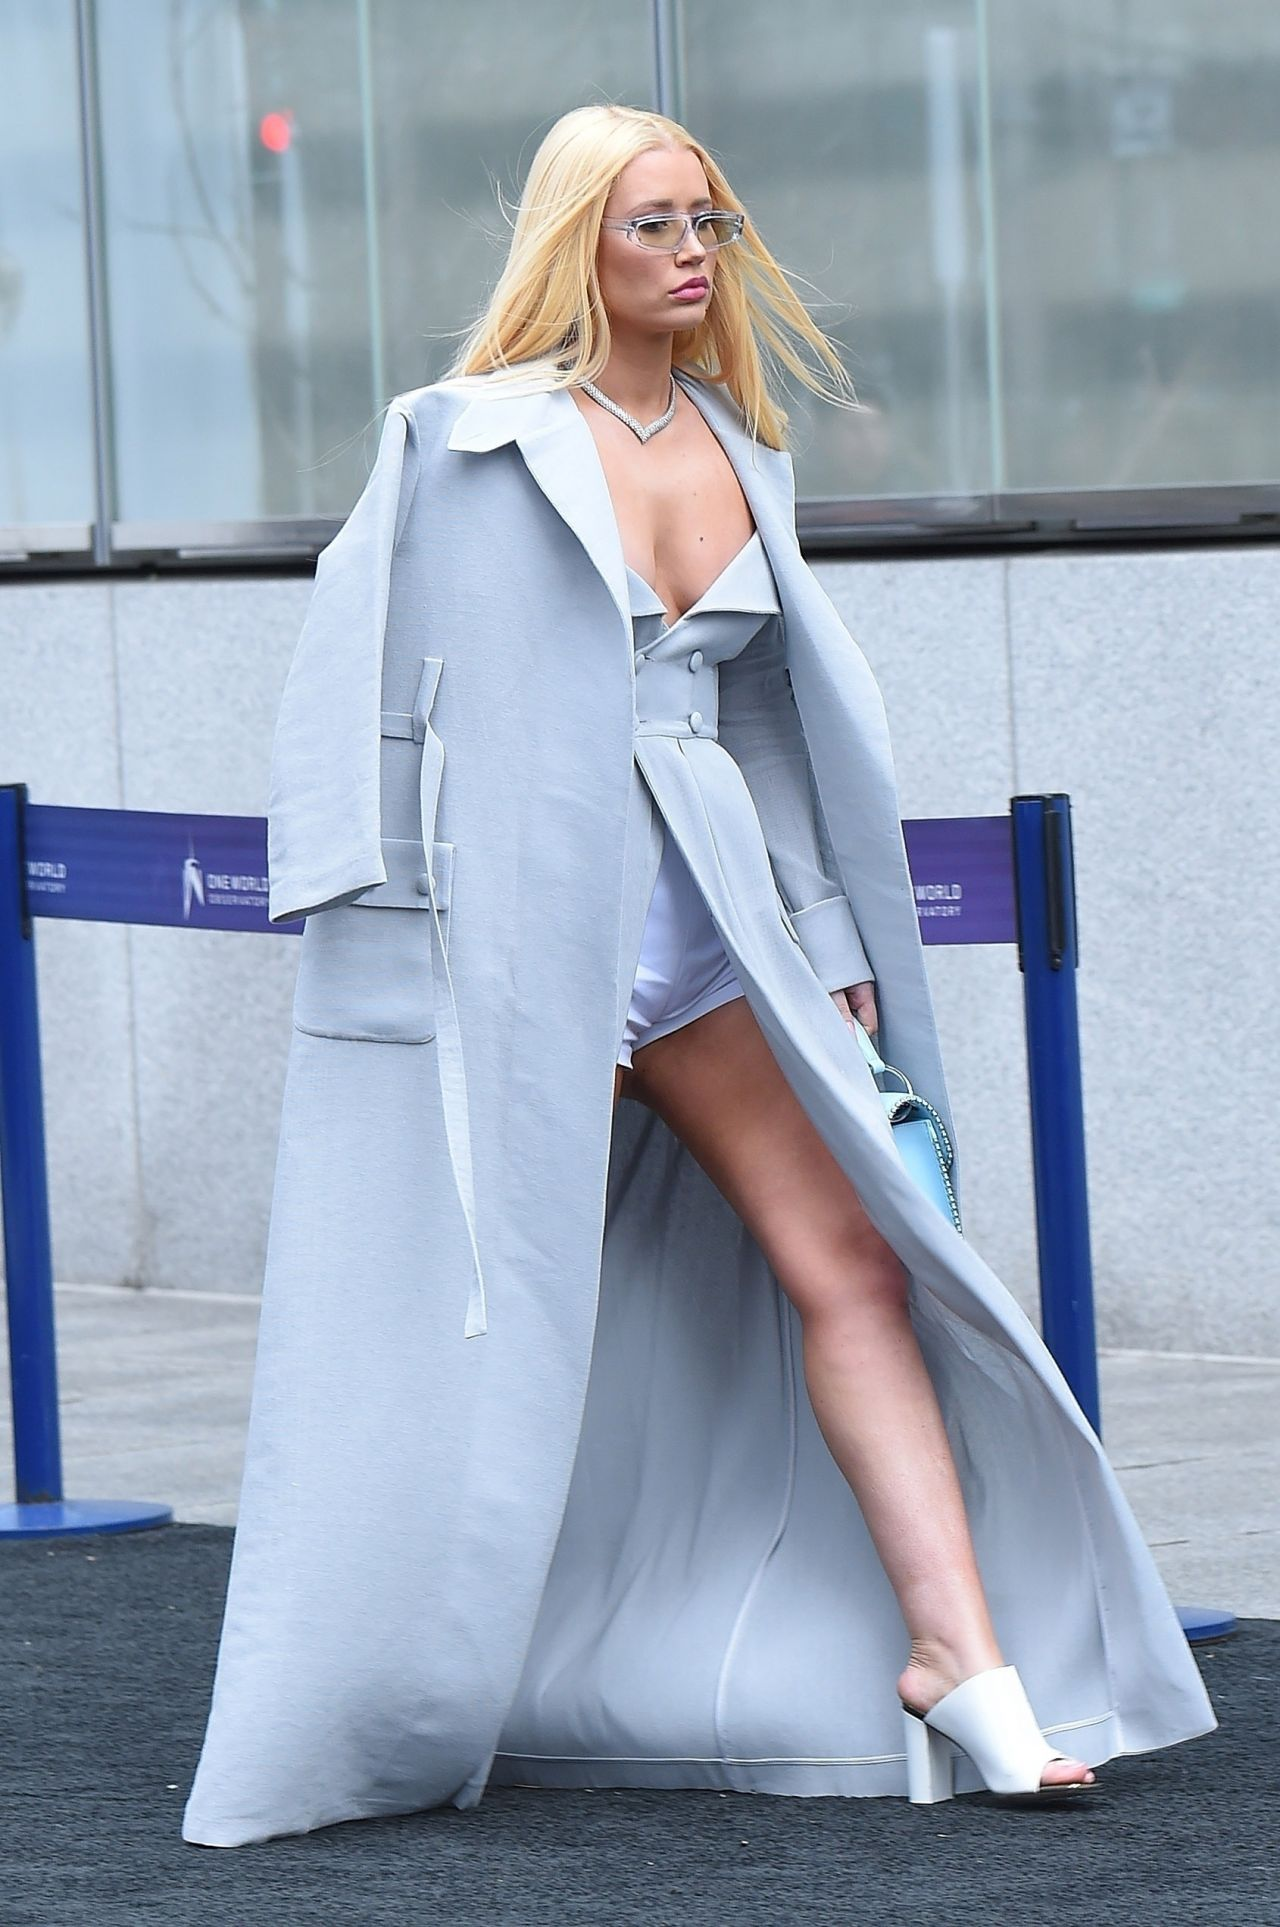 Iggy Azalea Arrives At The Roc Nation Luncheon In Nyc